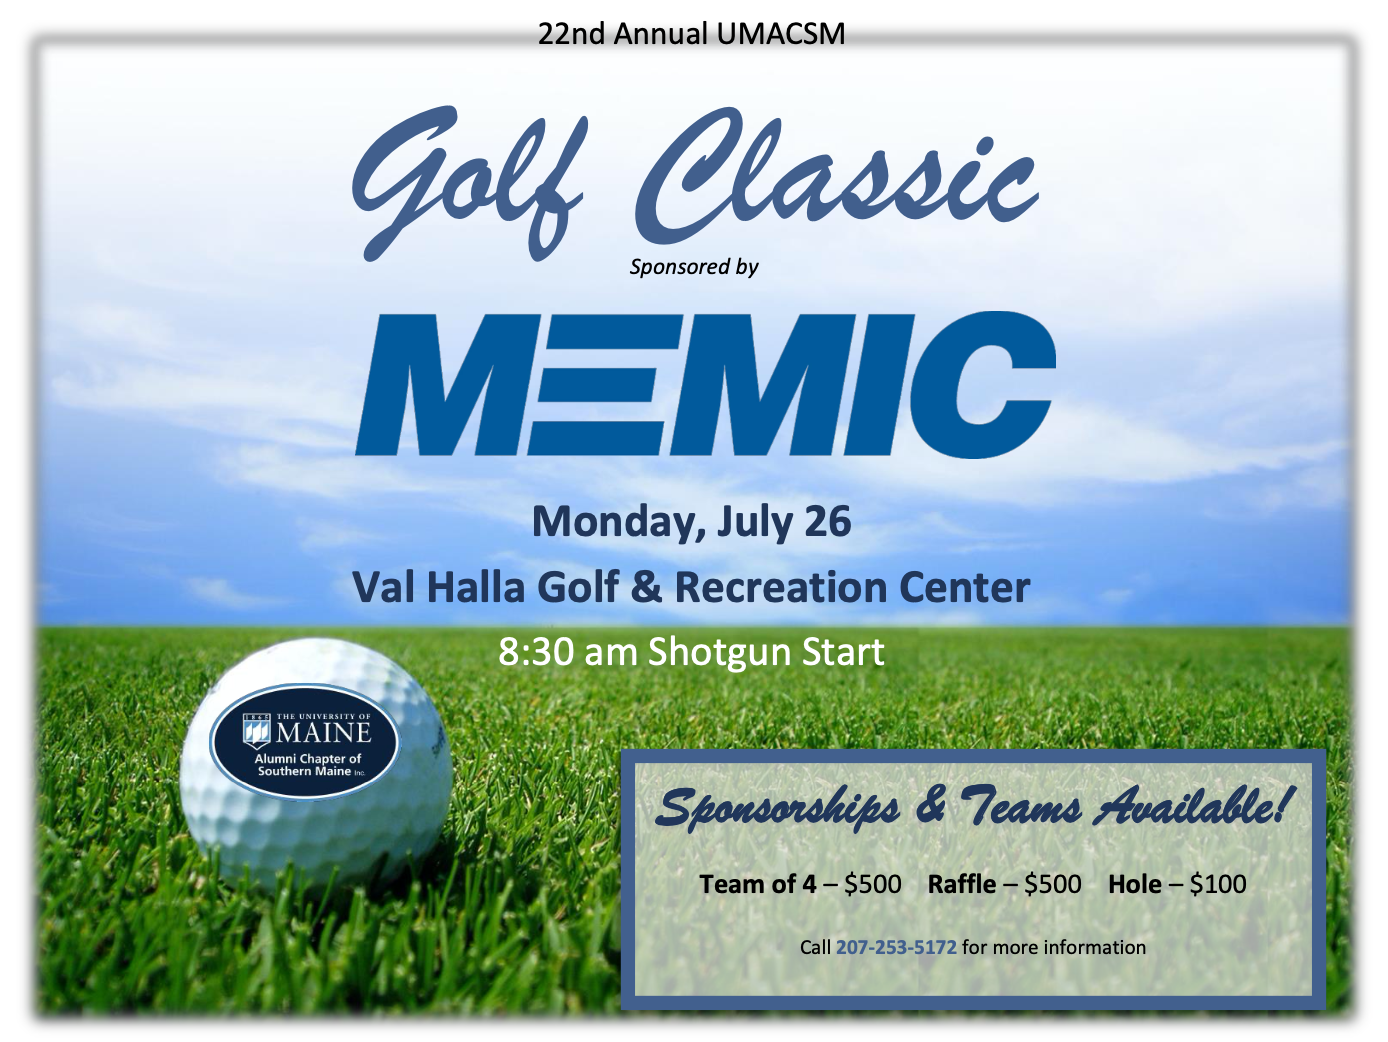 22nd Annual UMACSM Golf Classic sponsored by MEMIC. Monday July 26th at the Val Halla Golf & Recreation Center. Sponsorships and teams available! Call 207-253-5172 for more information.